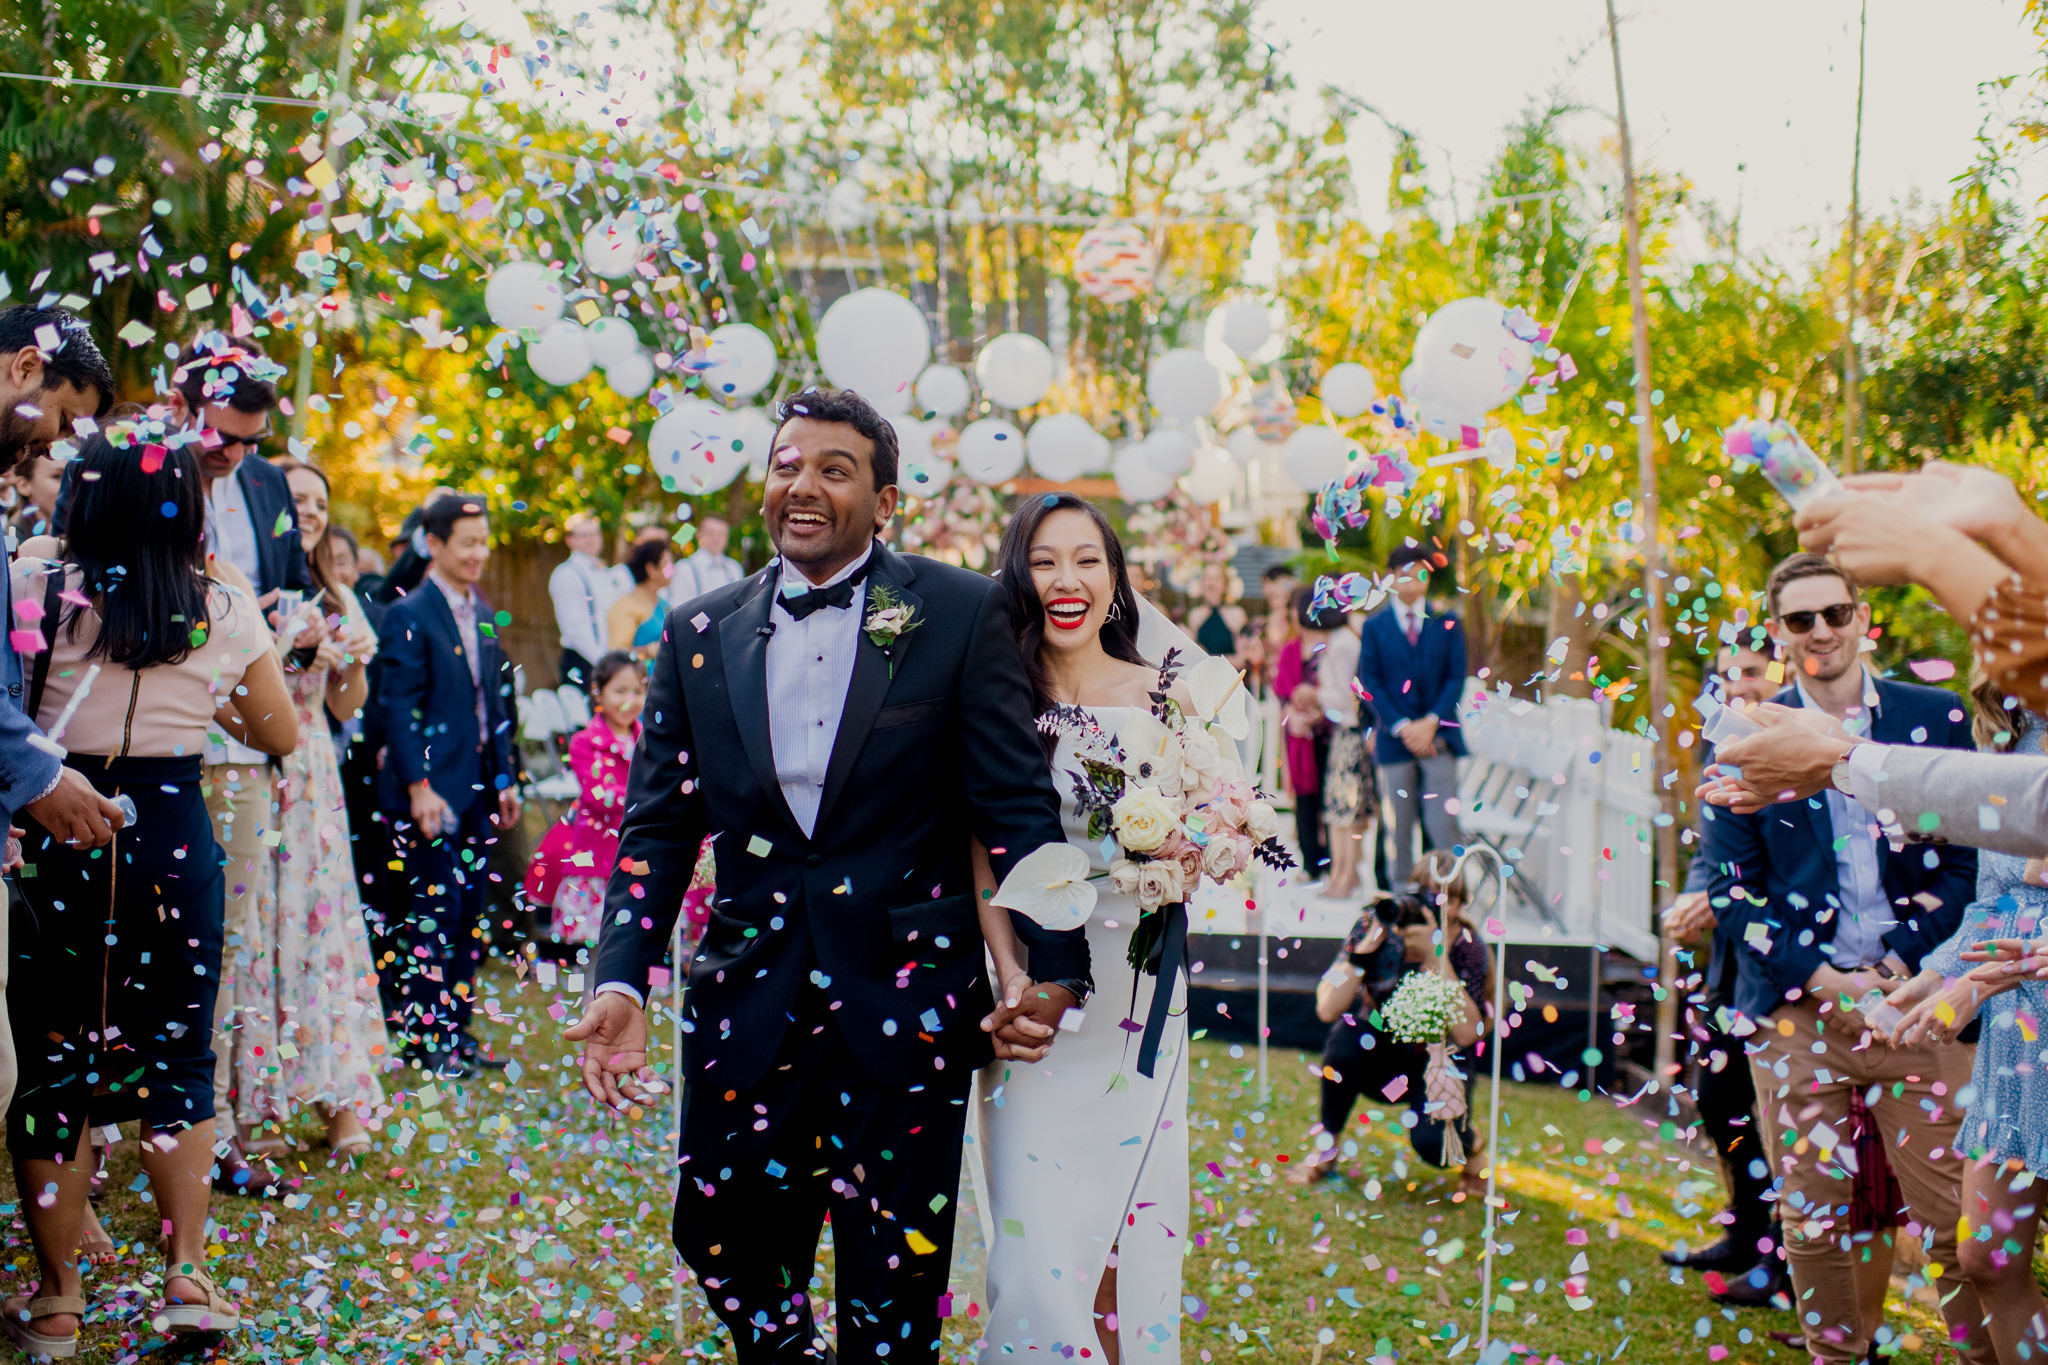 Bride and groom walk down the aisle and laugh as guests shower them in colourful confetti